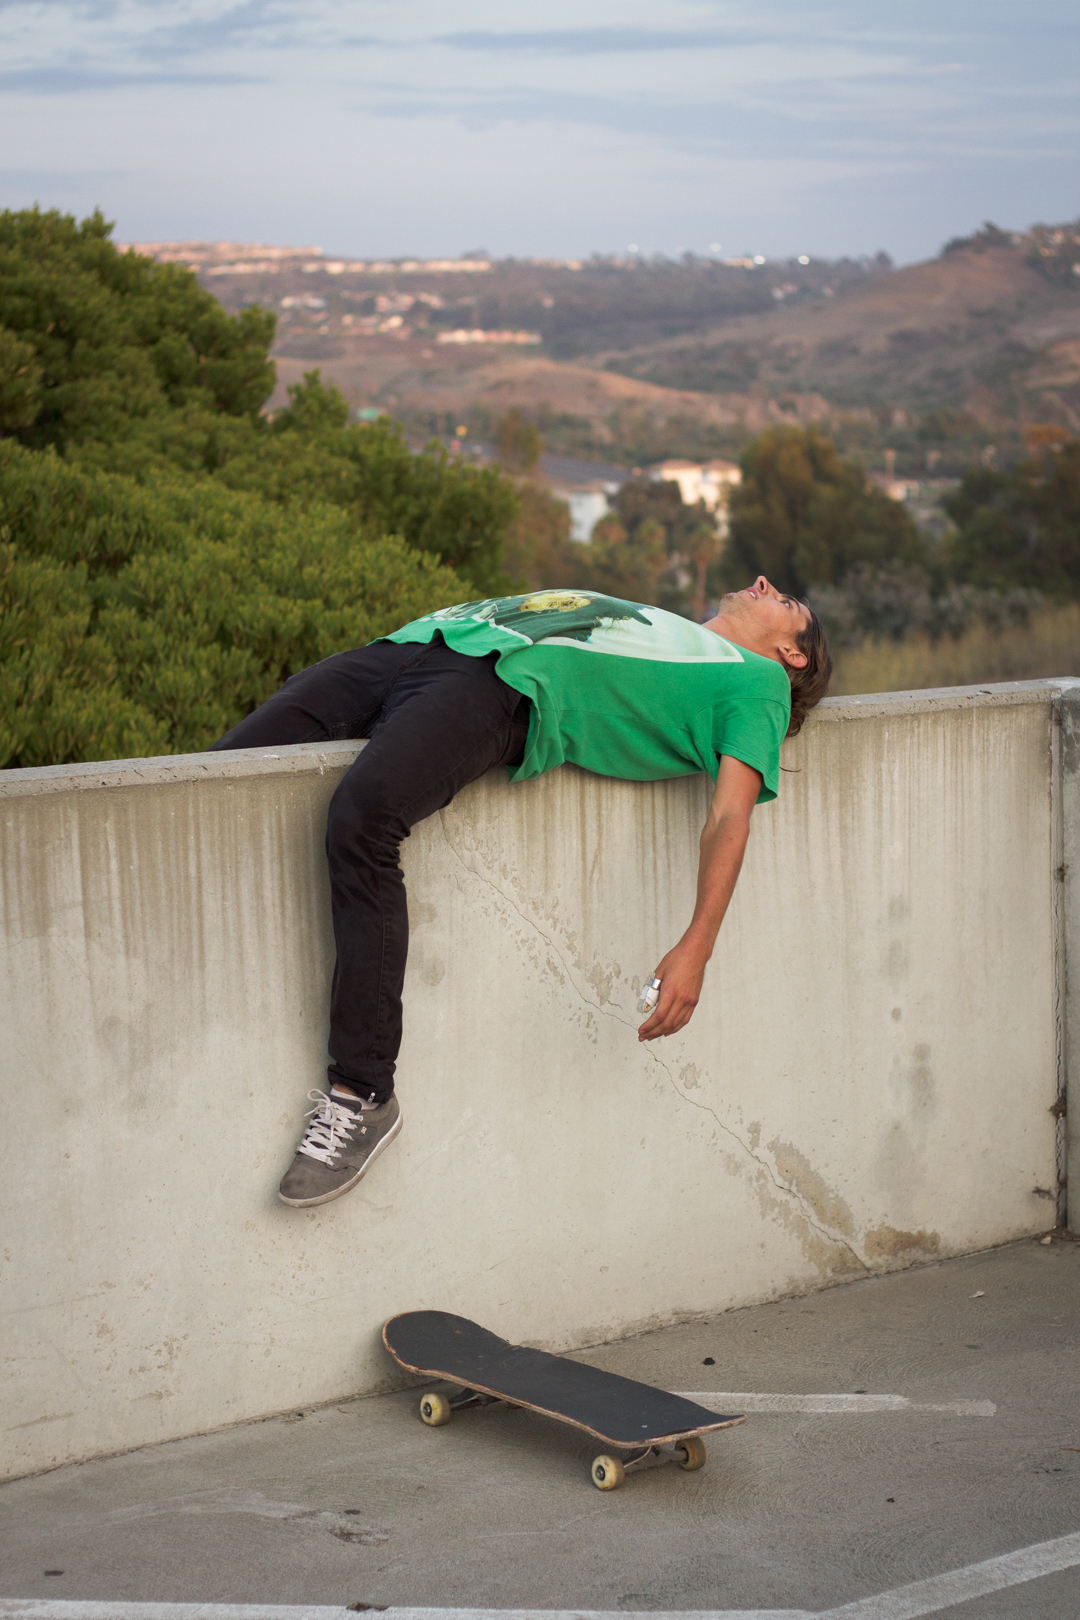 The skateboarder lifestyle is envied by nearly everyone, lived by few.